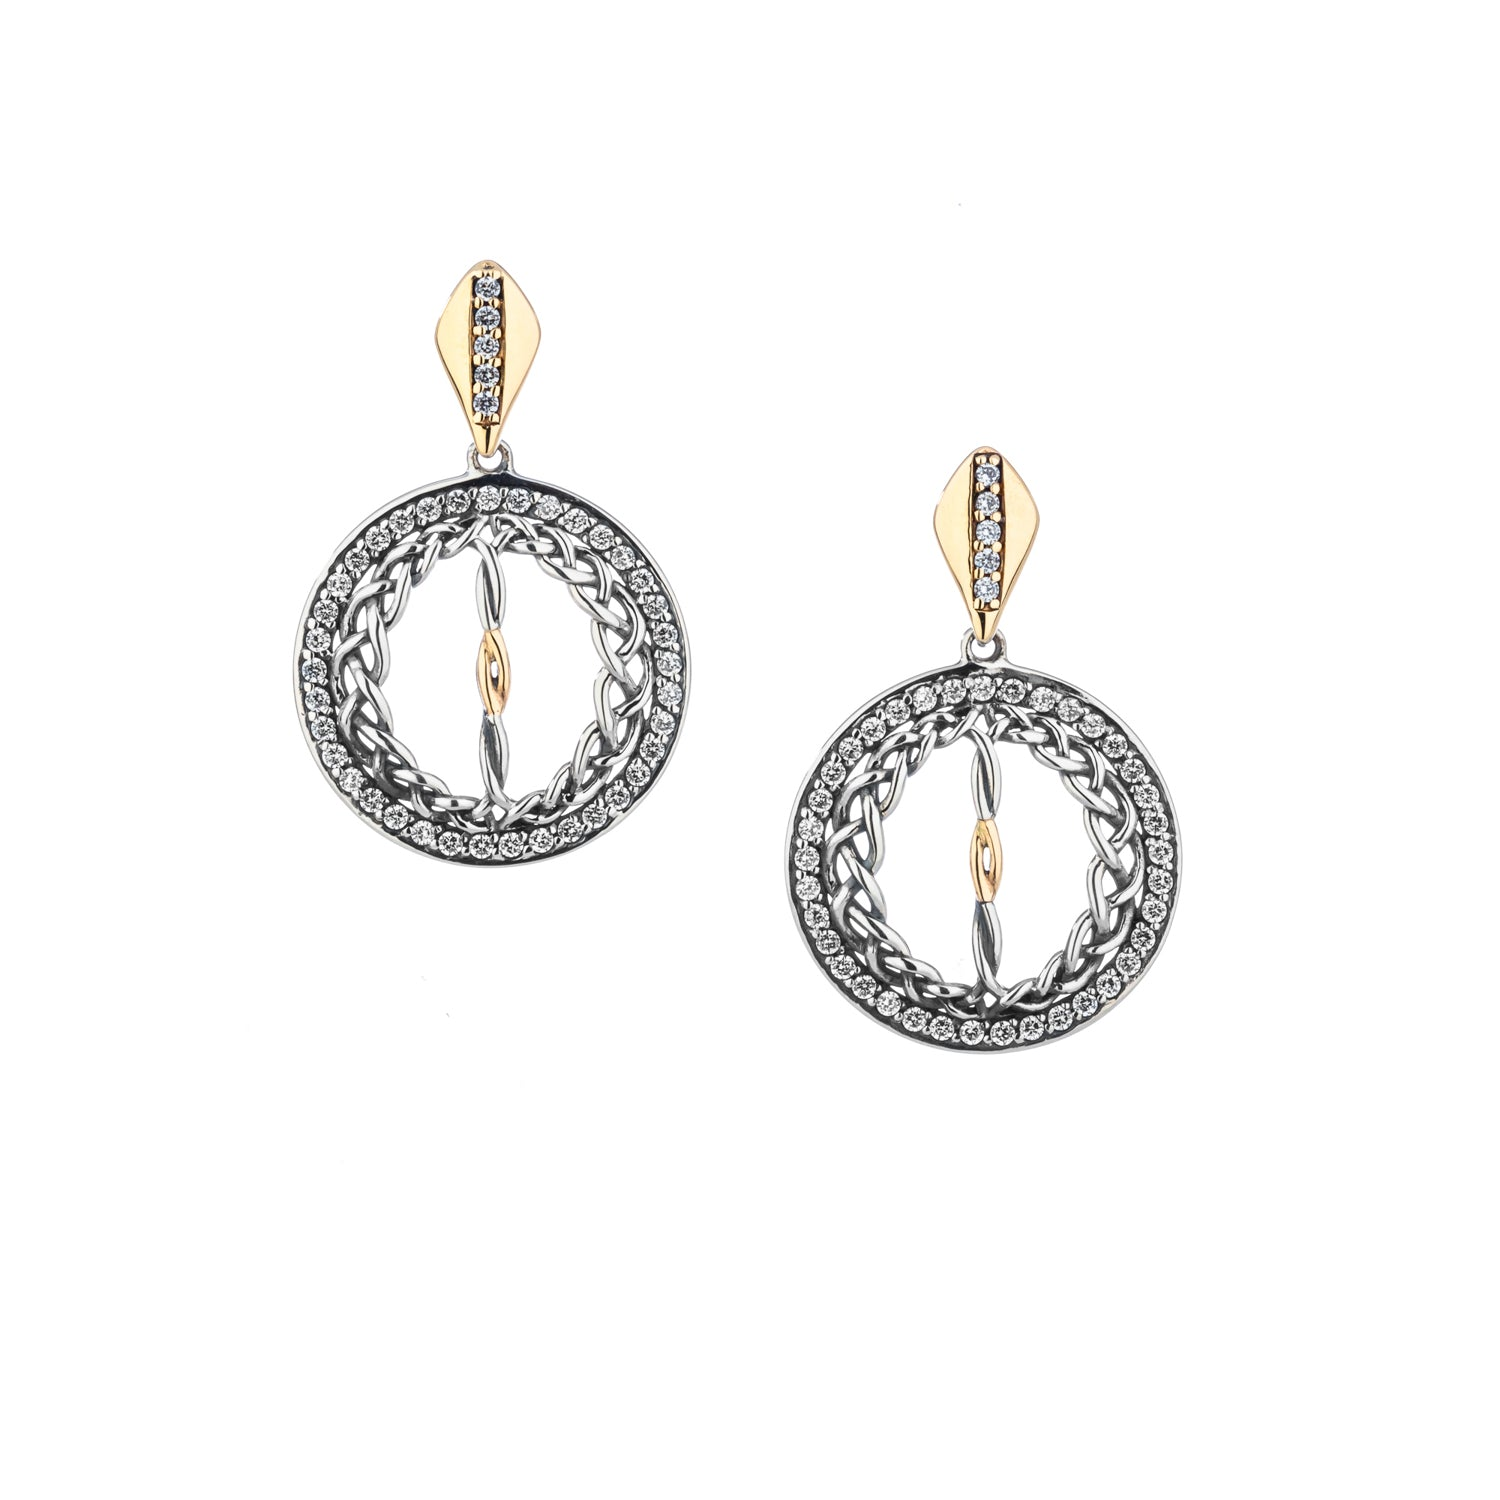 Earrings 10k CZ Woven Round Gateway Small Post Earrings from welch and company jewelers near syracuse ny